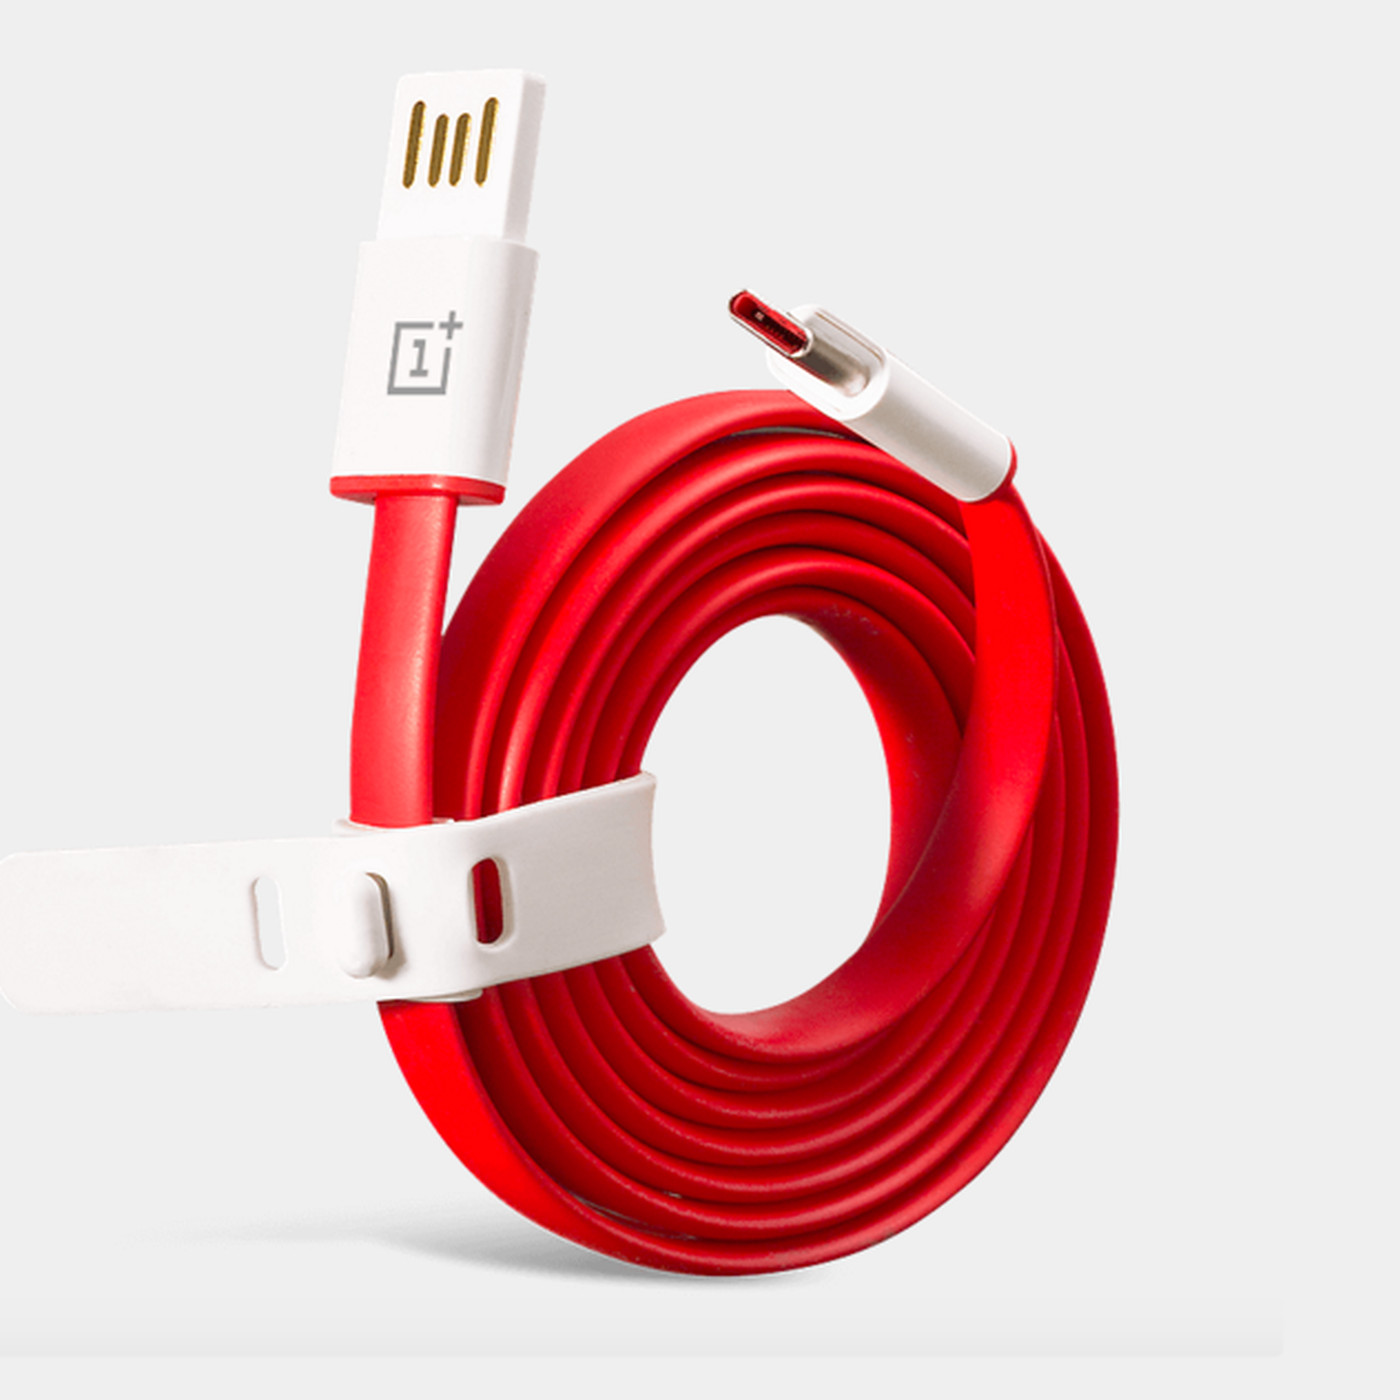 hight resolution of google engineer says you shouldn t buy oneplus usb type c cables